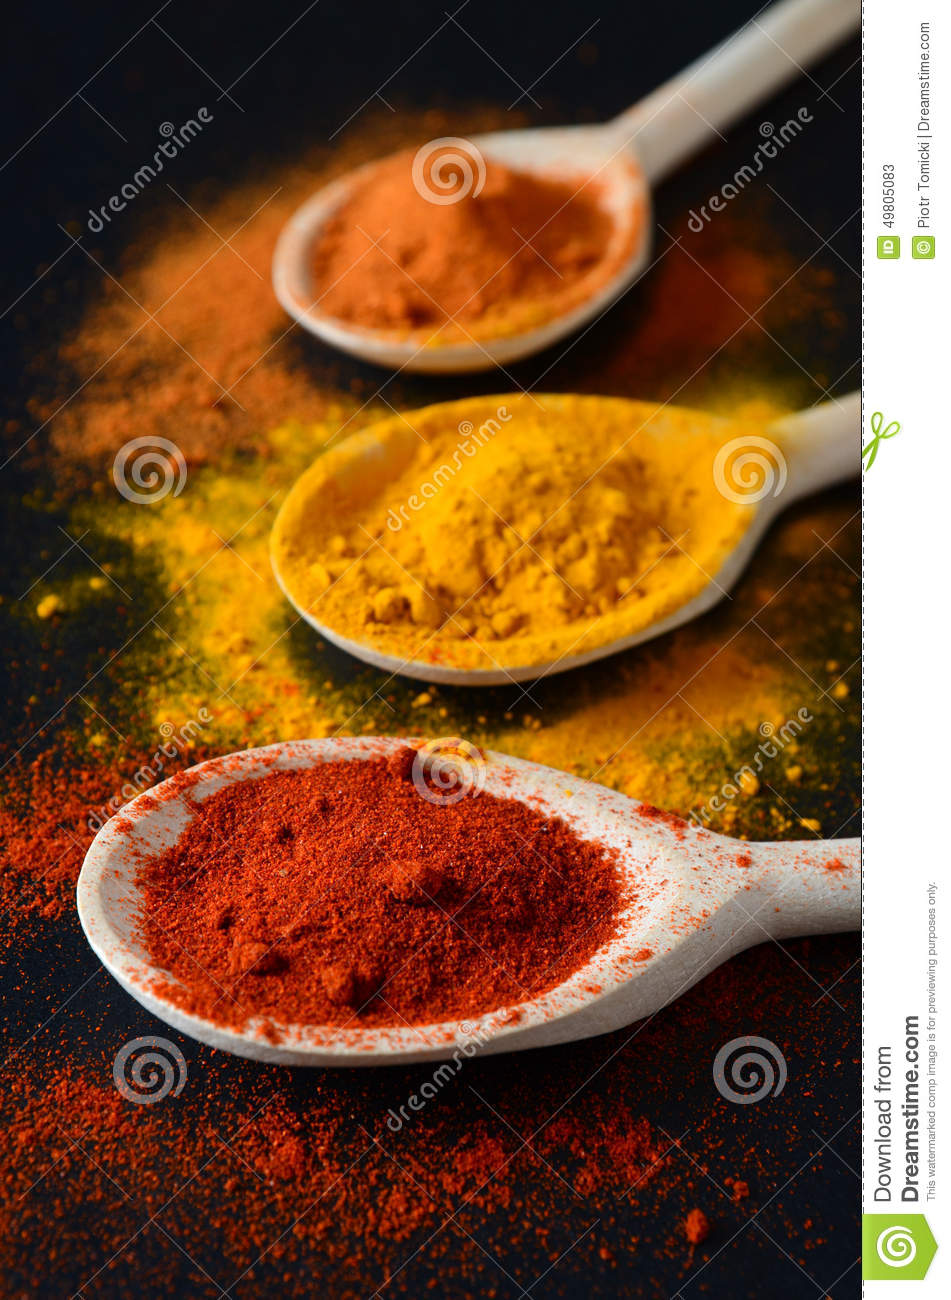 Colorful Spoons: Colorful Spices On Cooking Spoons Stock Image